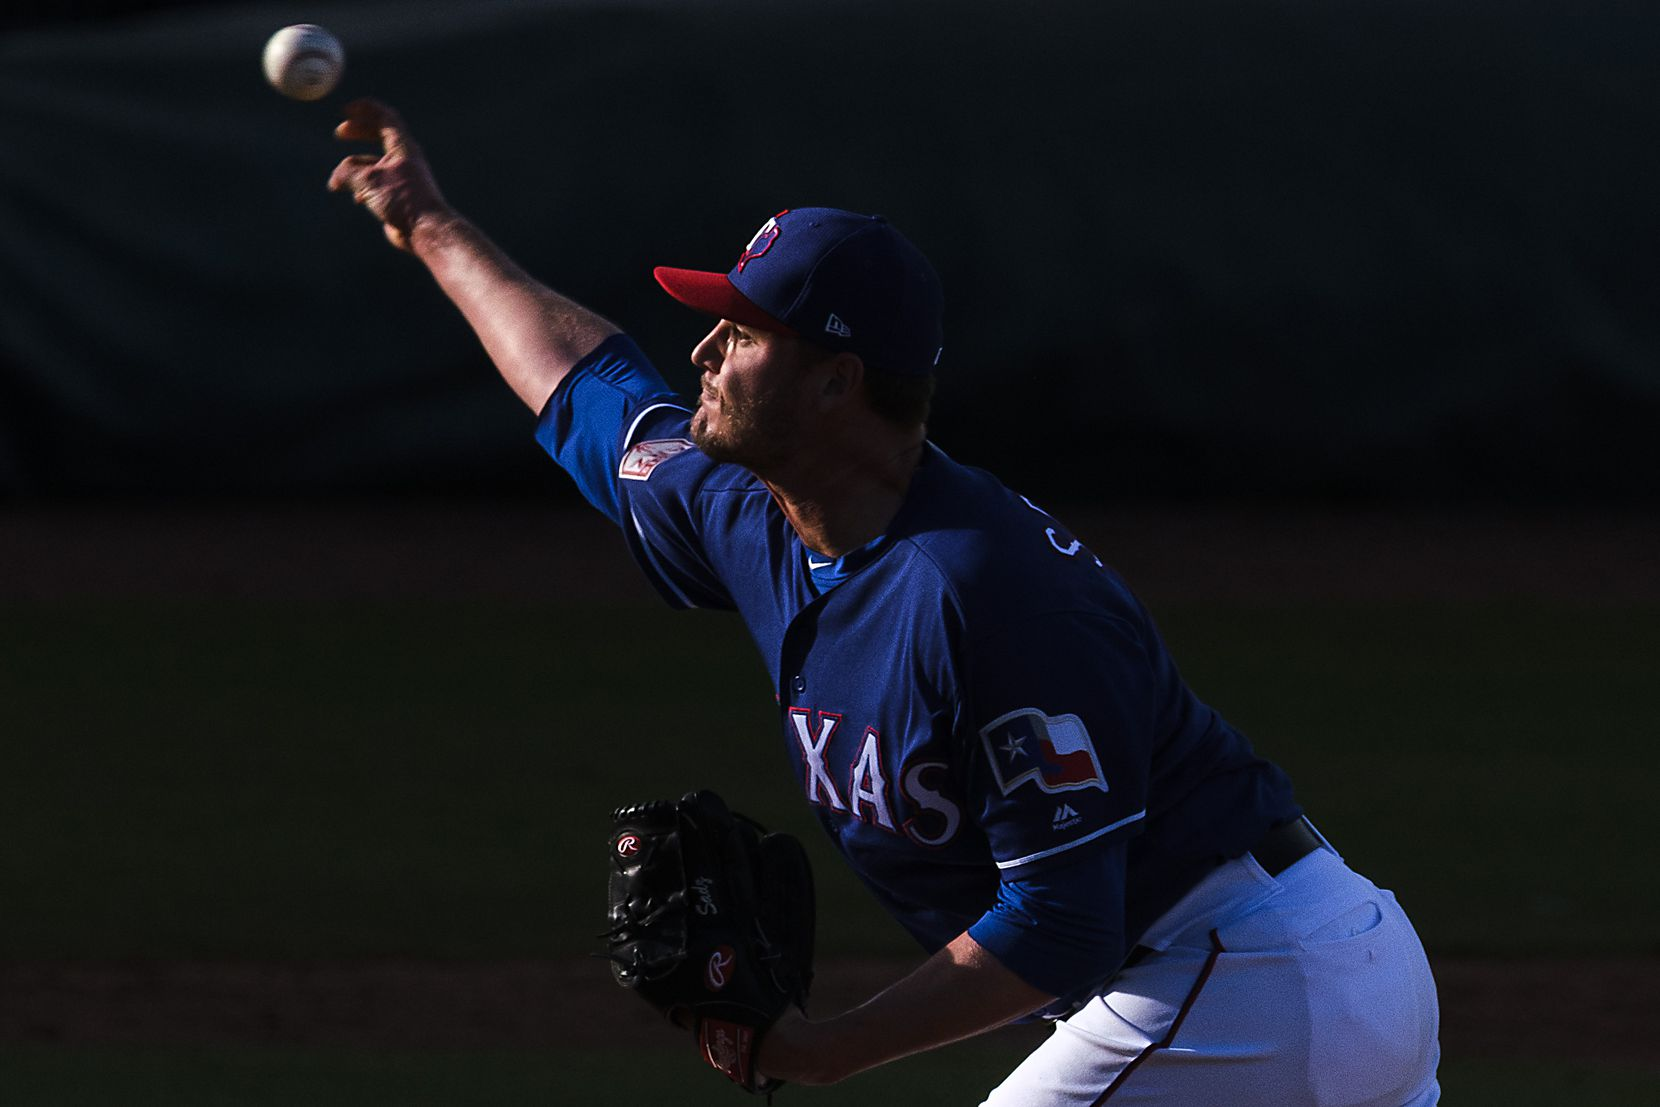 Texas Rangers pitcher Connor Sadzeck throws a pitch as the last rays of sunlight hit the mound during the eighth inning of a spring training game against the Milwaukee Brewers on Feb. 24 at Surprise Stadium in Surprise, Ariz.